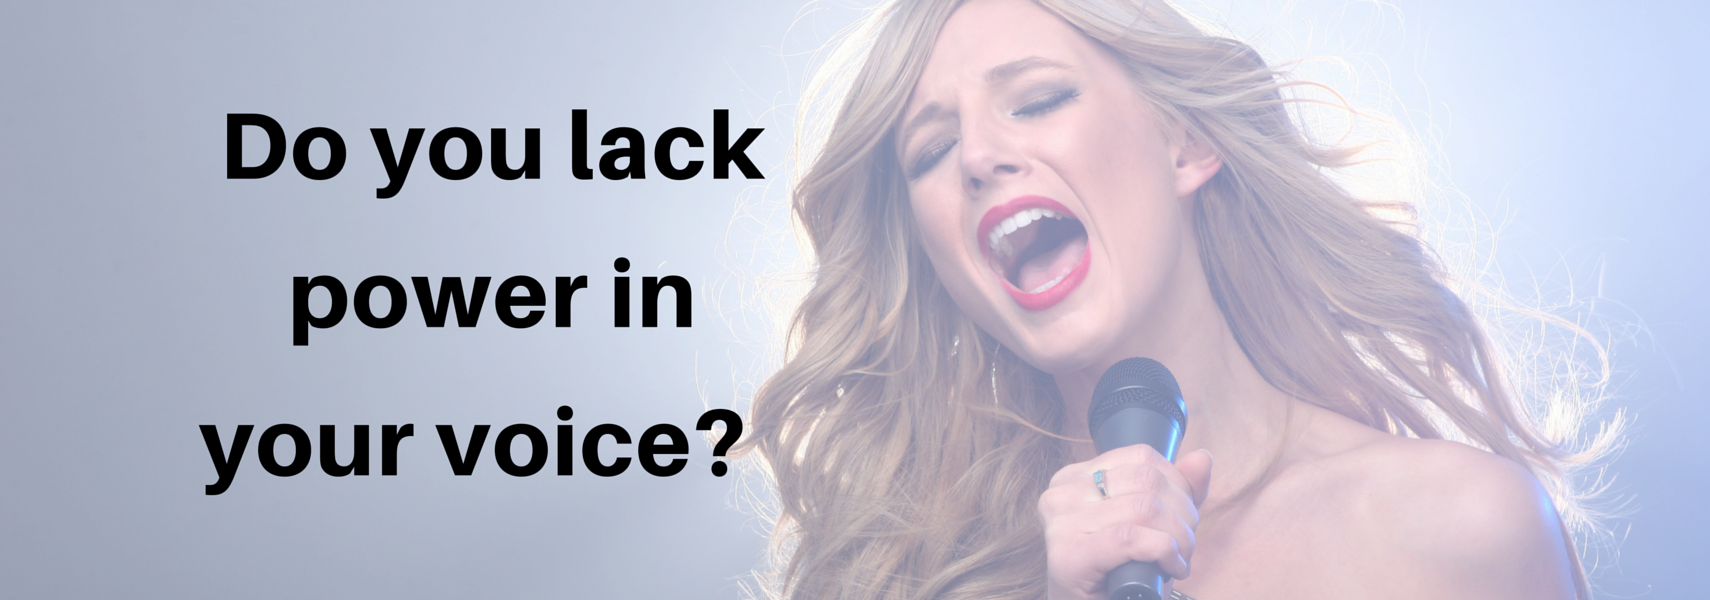 Do you lack power in your voice?